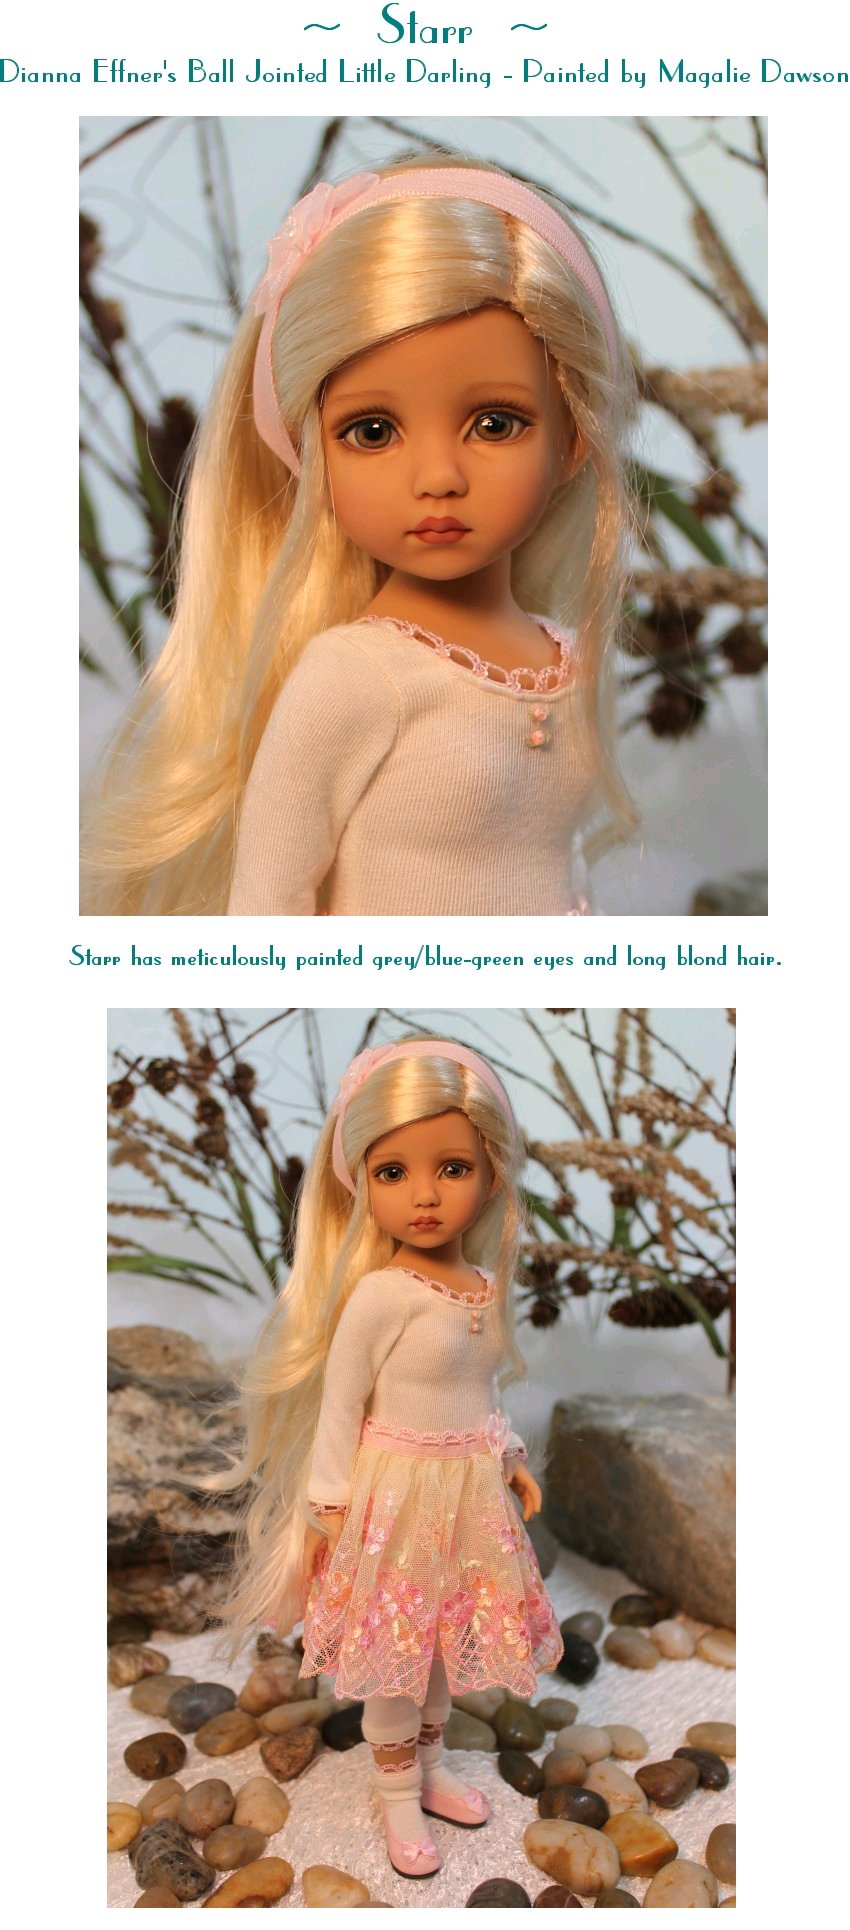 Starr - a Ball Jointed Little Darling